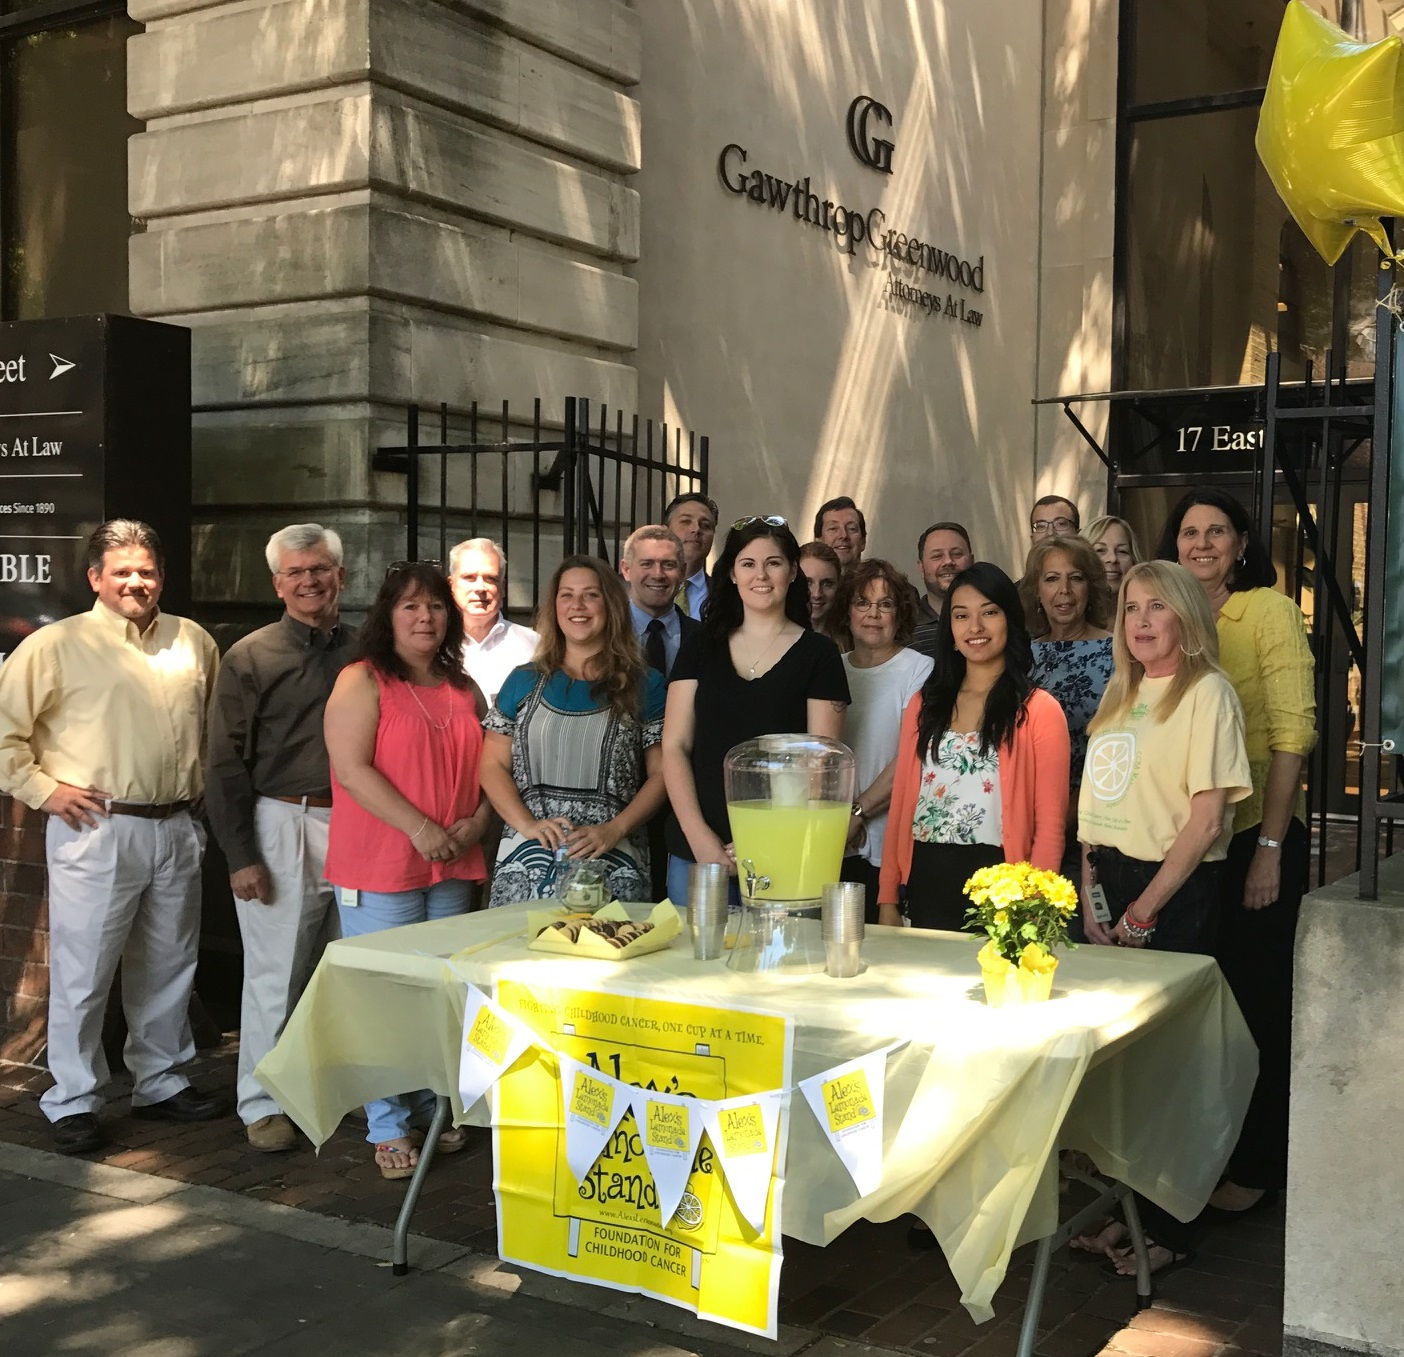 Gawthrop Greenwood Alex's Lemonade Stand 2017